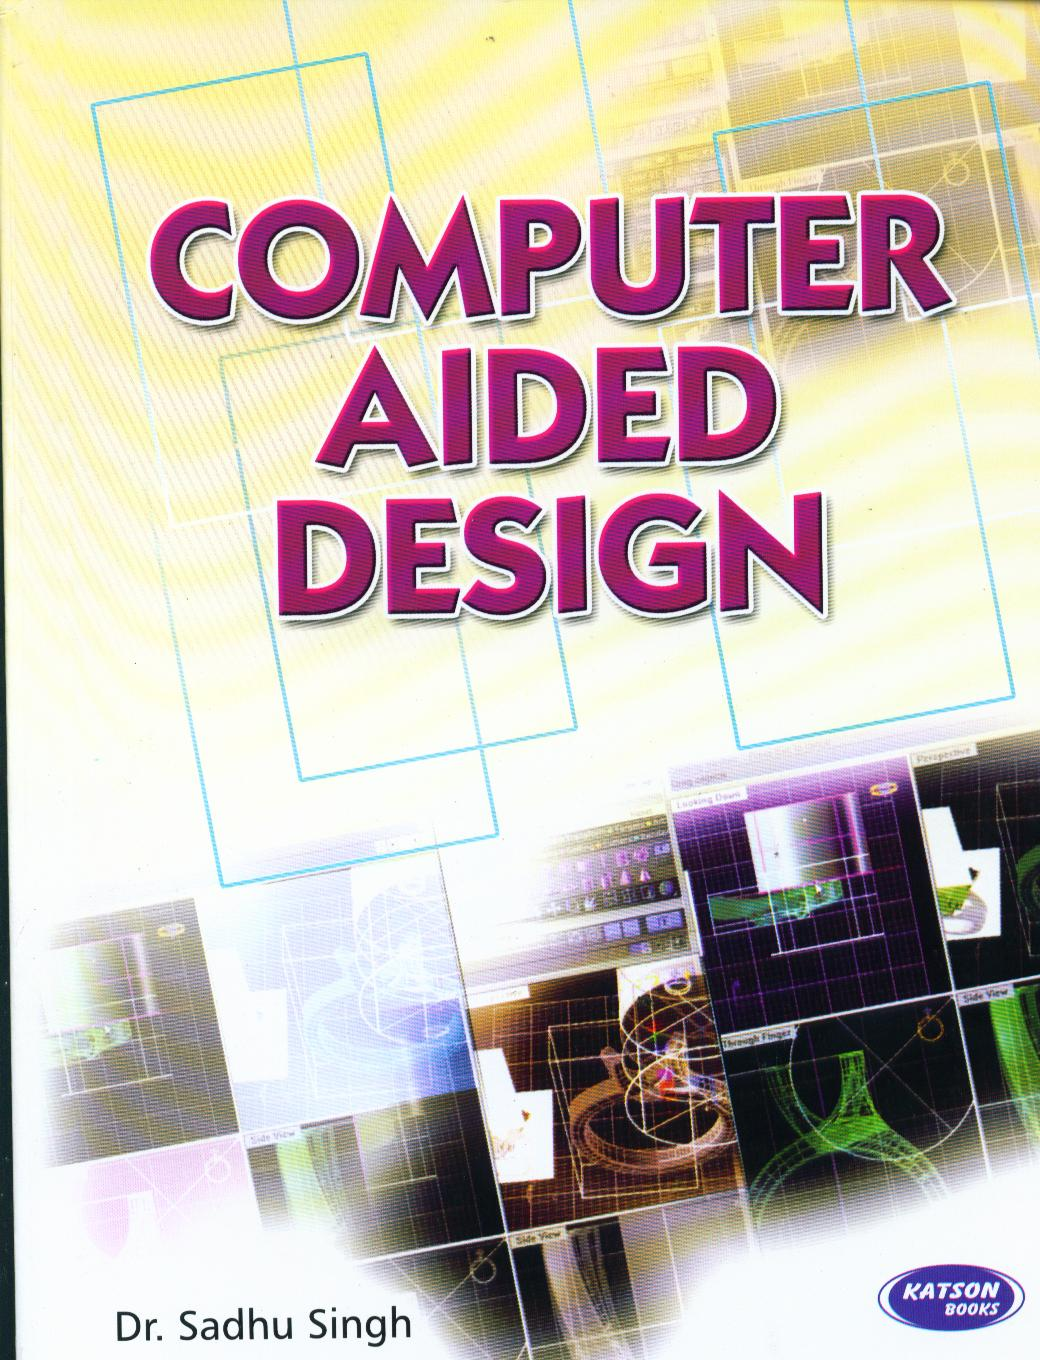 Design ebook free computer download aided